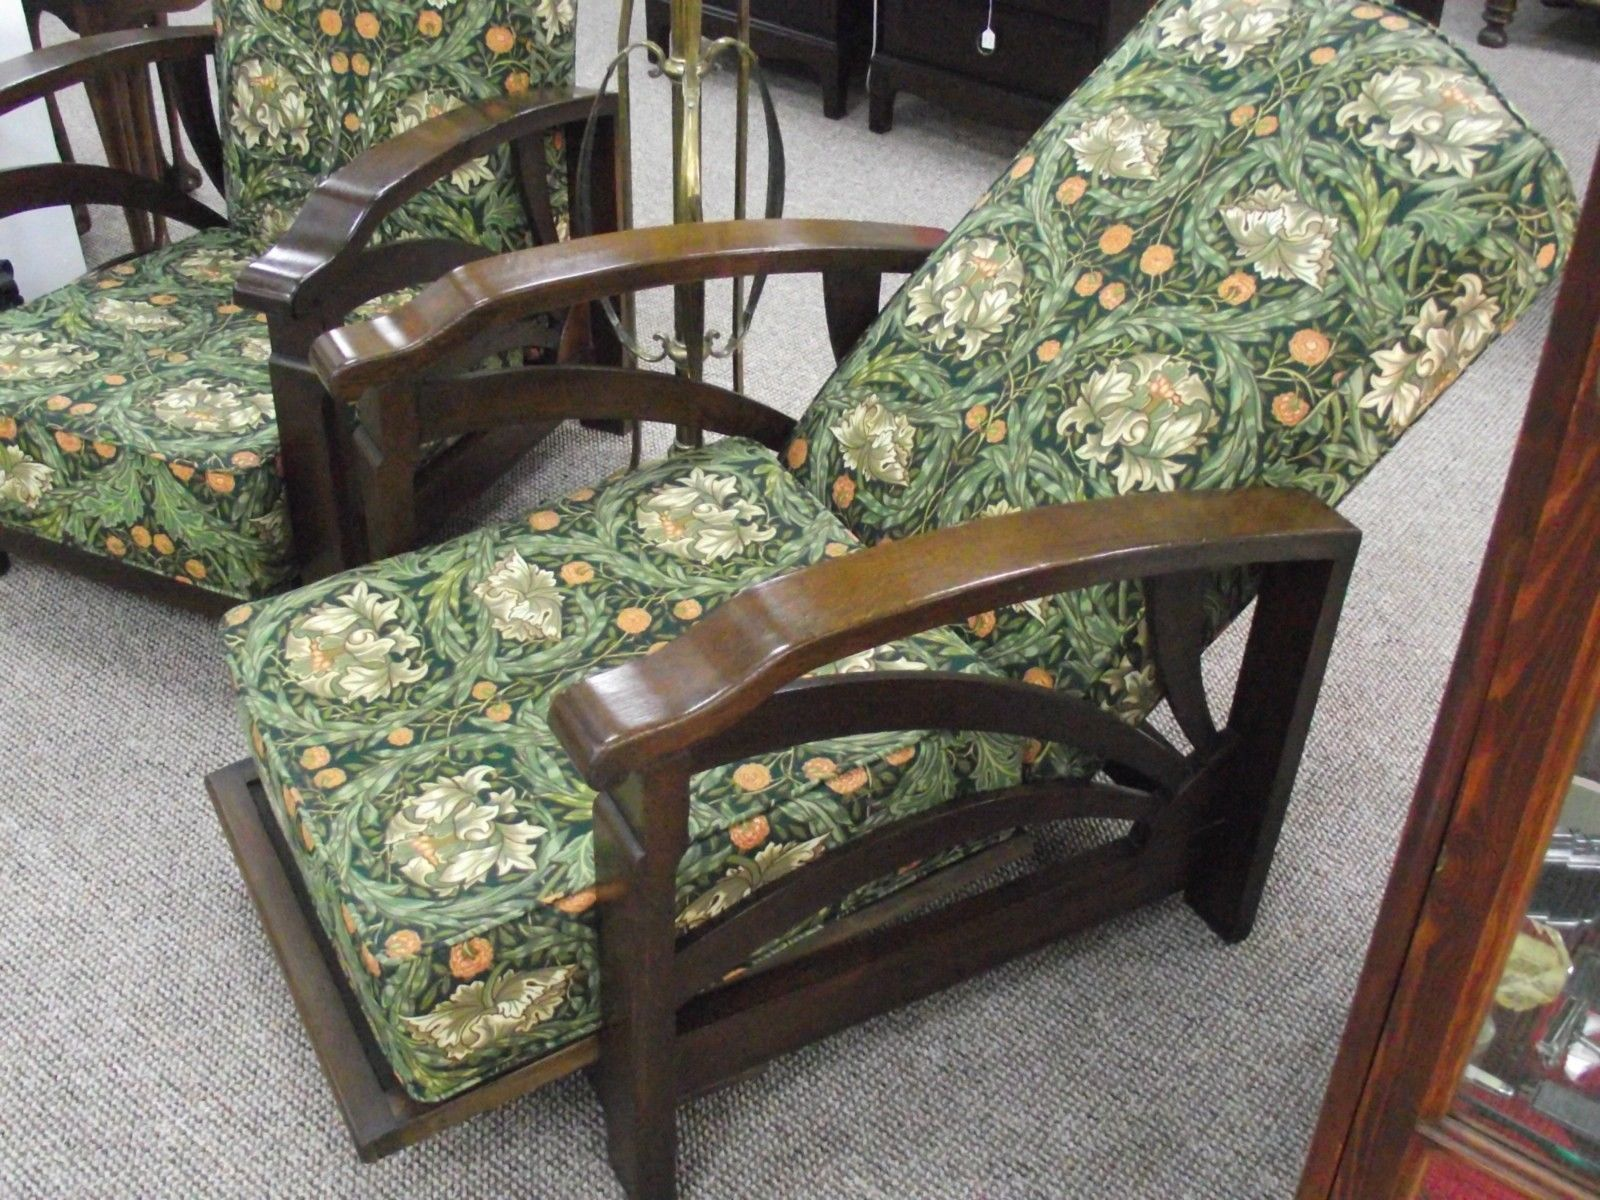 SUPERB PAIR OF ART DECO OAK RECLINING CHAIRS WITH WILLIAM